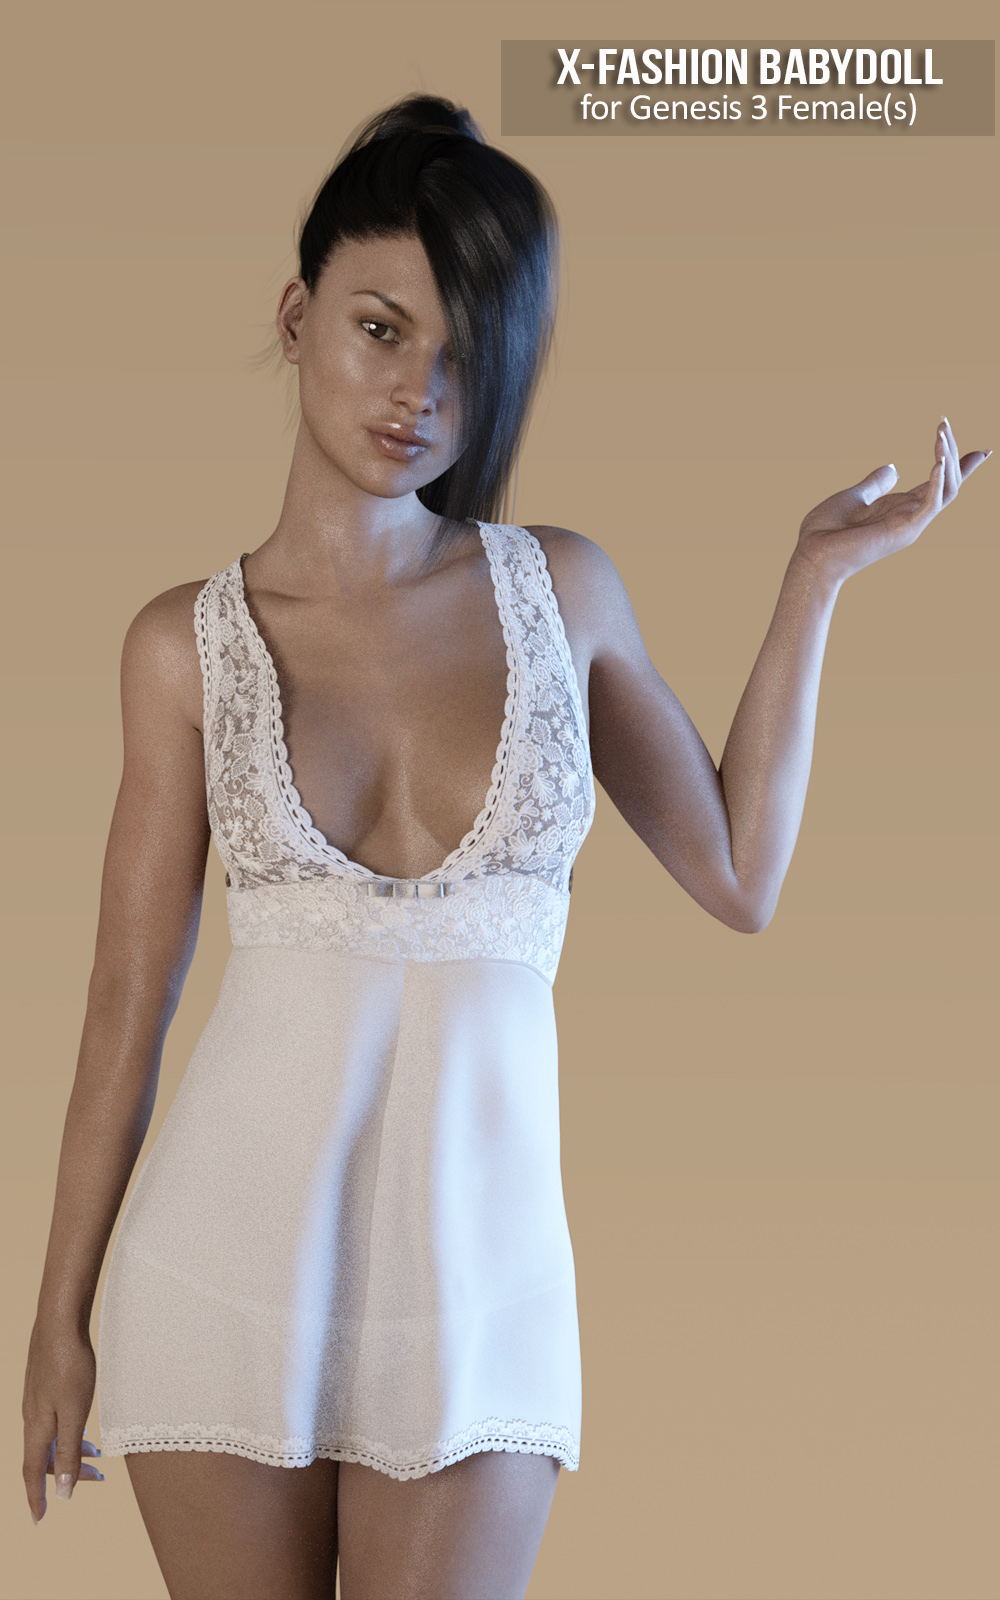 cf5b1070ea60f Fashion Babydoll for Genesis 3 Females. Warning! Content Advisory: Some  images may contain content not suitable for all viewers